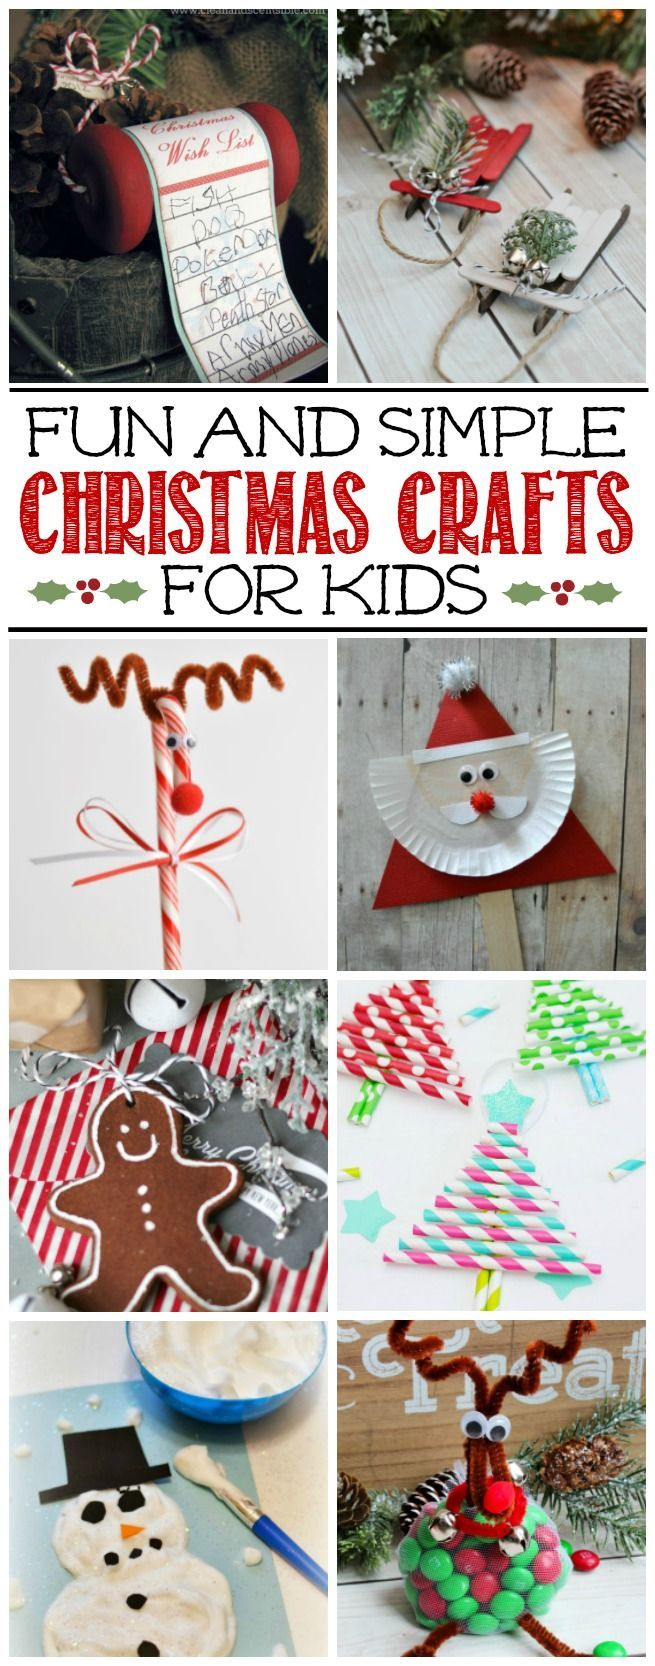 582 best Christmas images on Pinterest | Christmas ideas, Xmas and ...